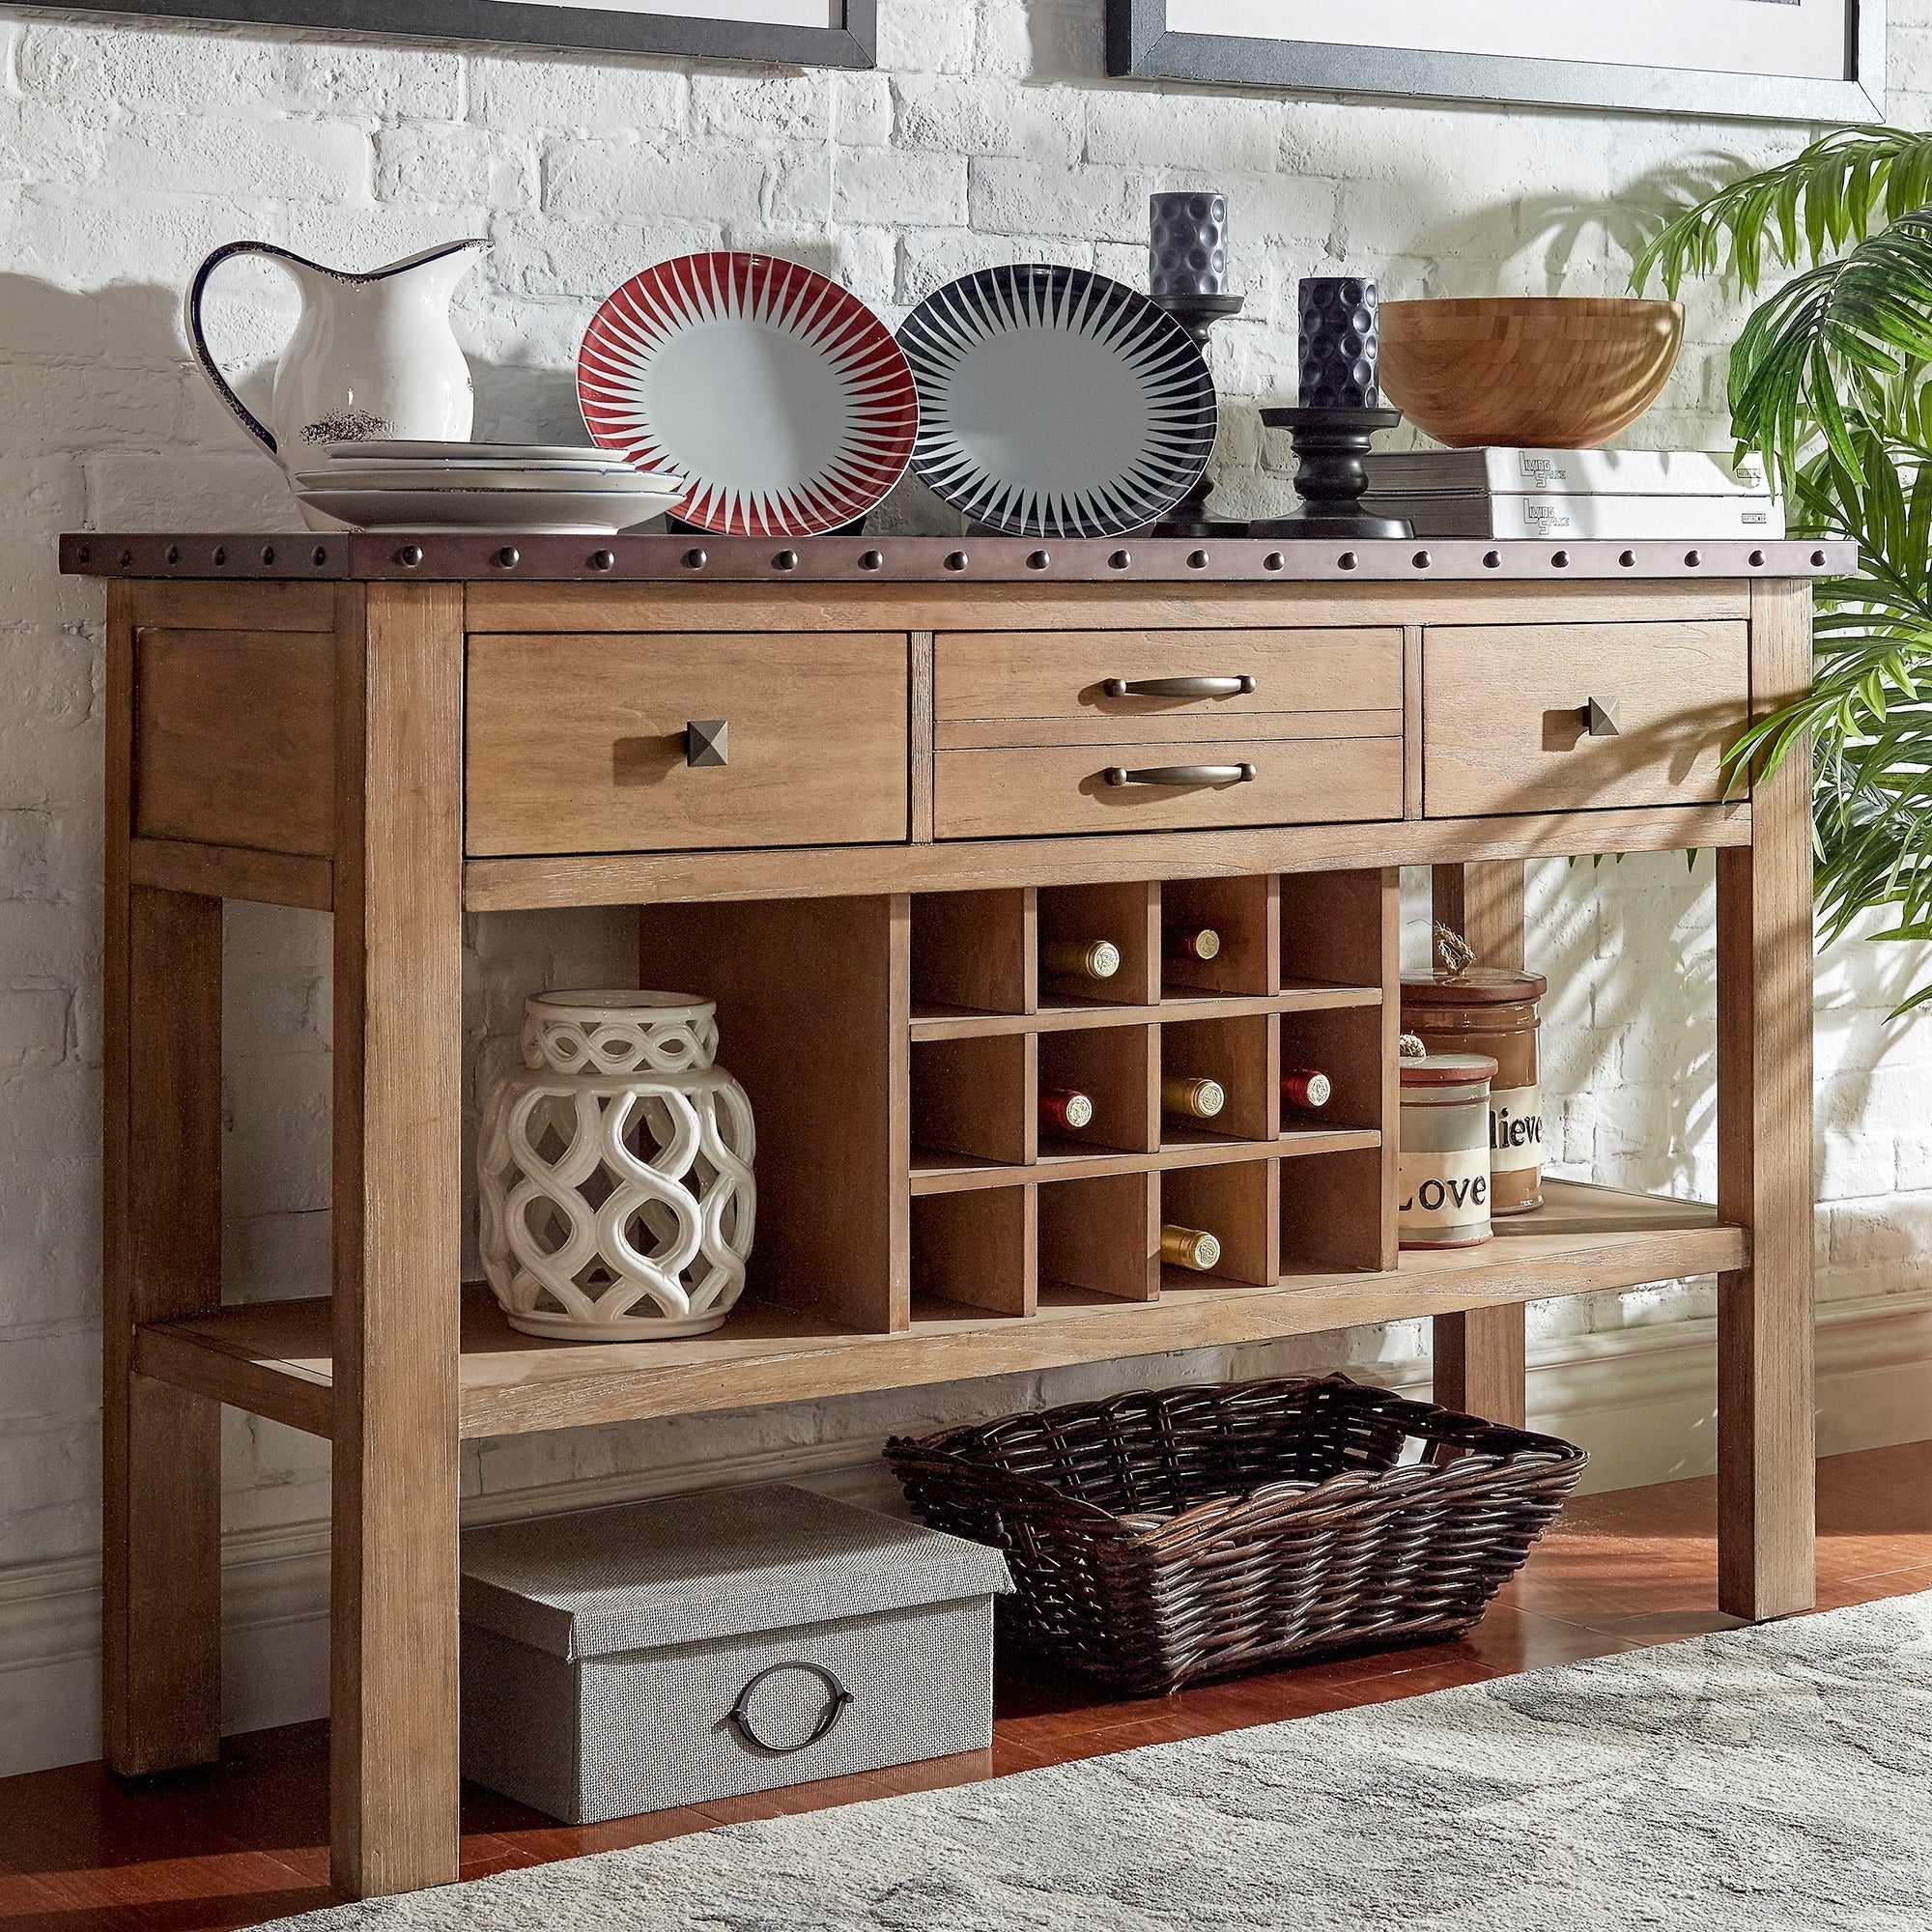 Voyager Wood and Zinc Balustrade Console Buffet Server by...